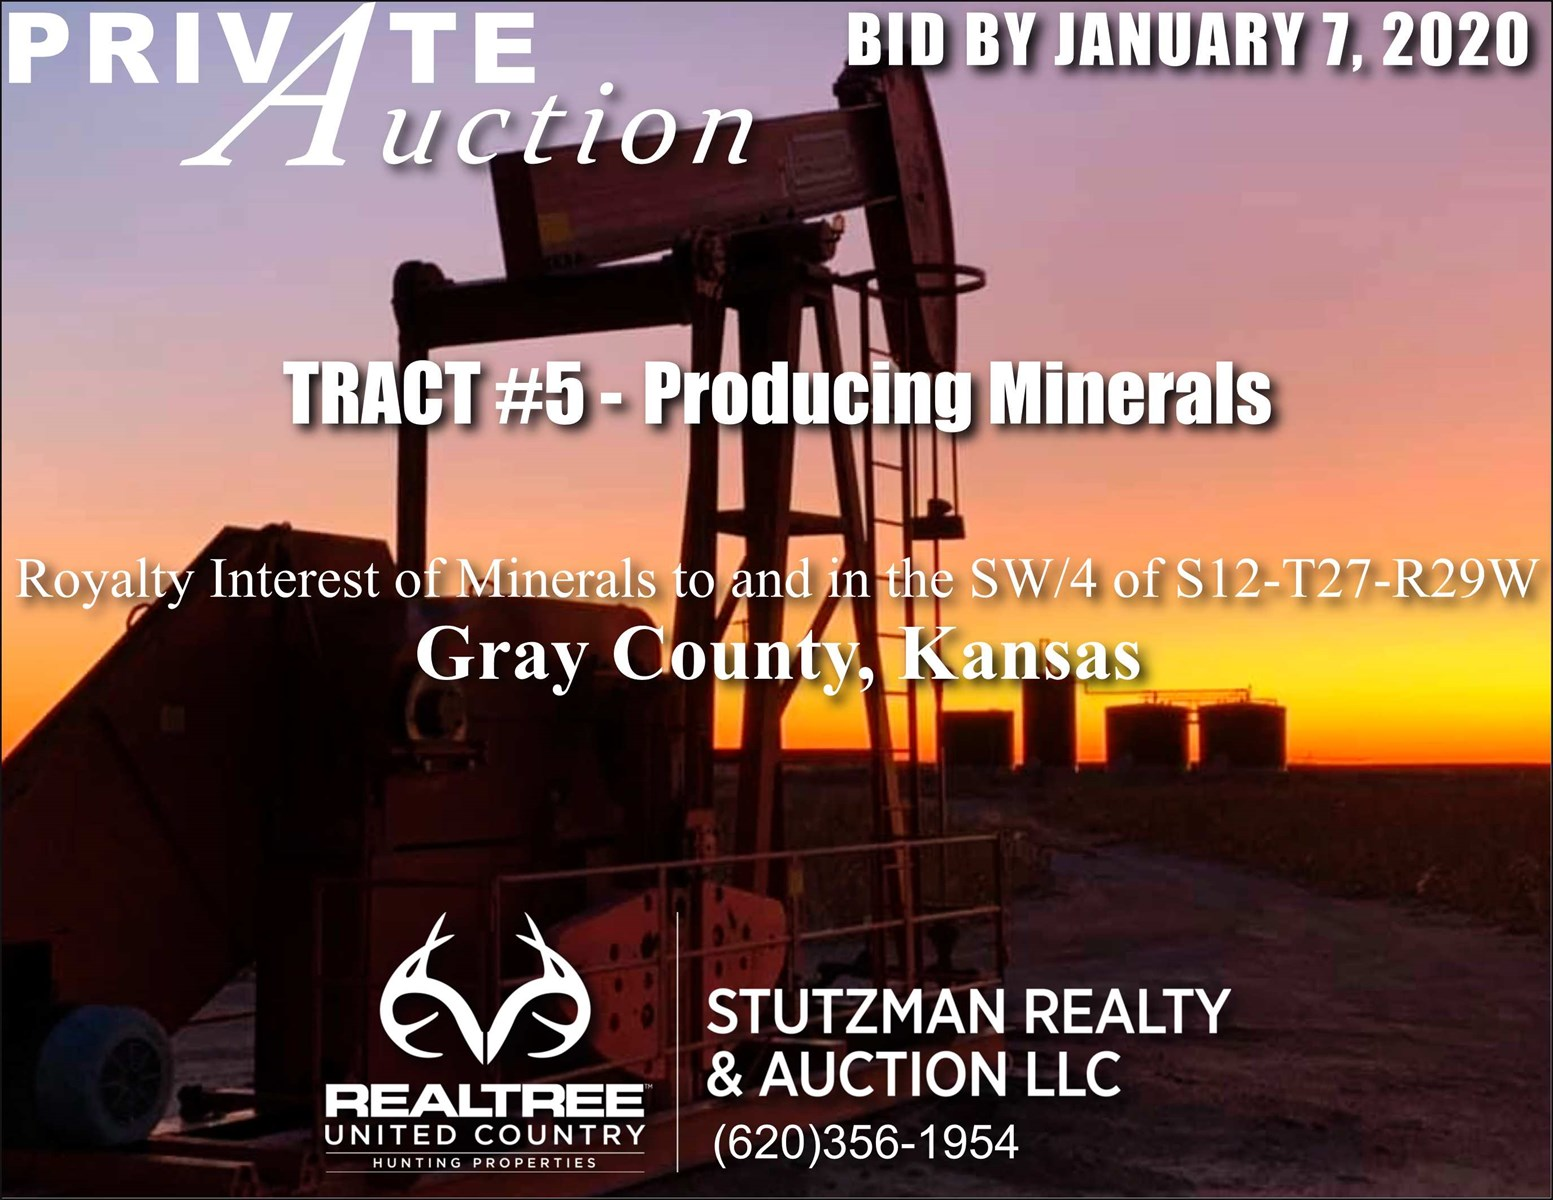 GRAY COUNTY KS  PRODUCING MINERALS - TR #5